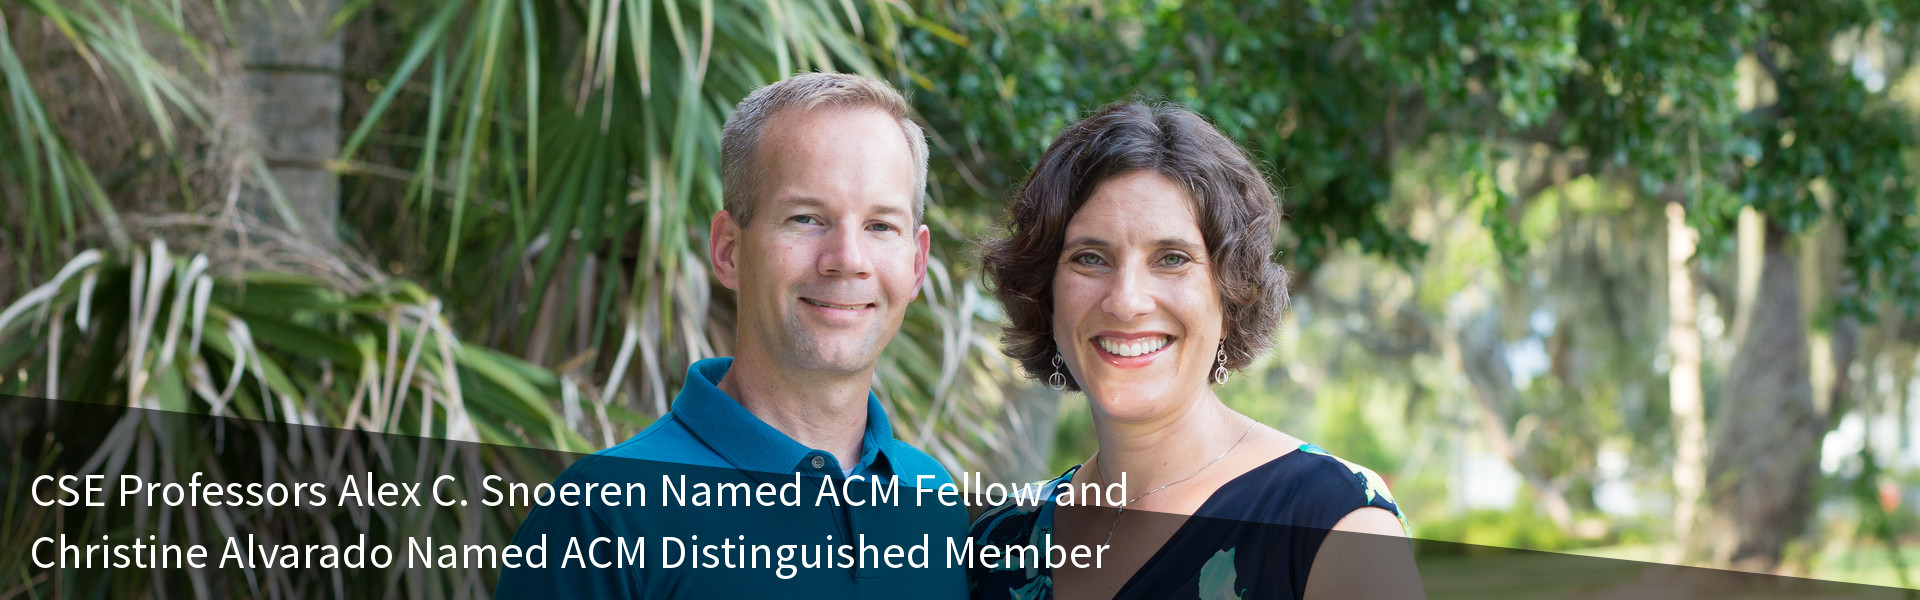 CSE Professors Alex C. Snoeren Named ACM Fellow and Christine Alvarado Named ACM Distinguished Member